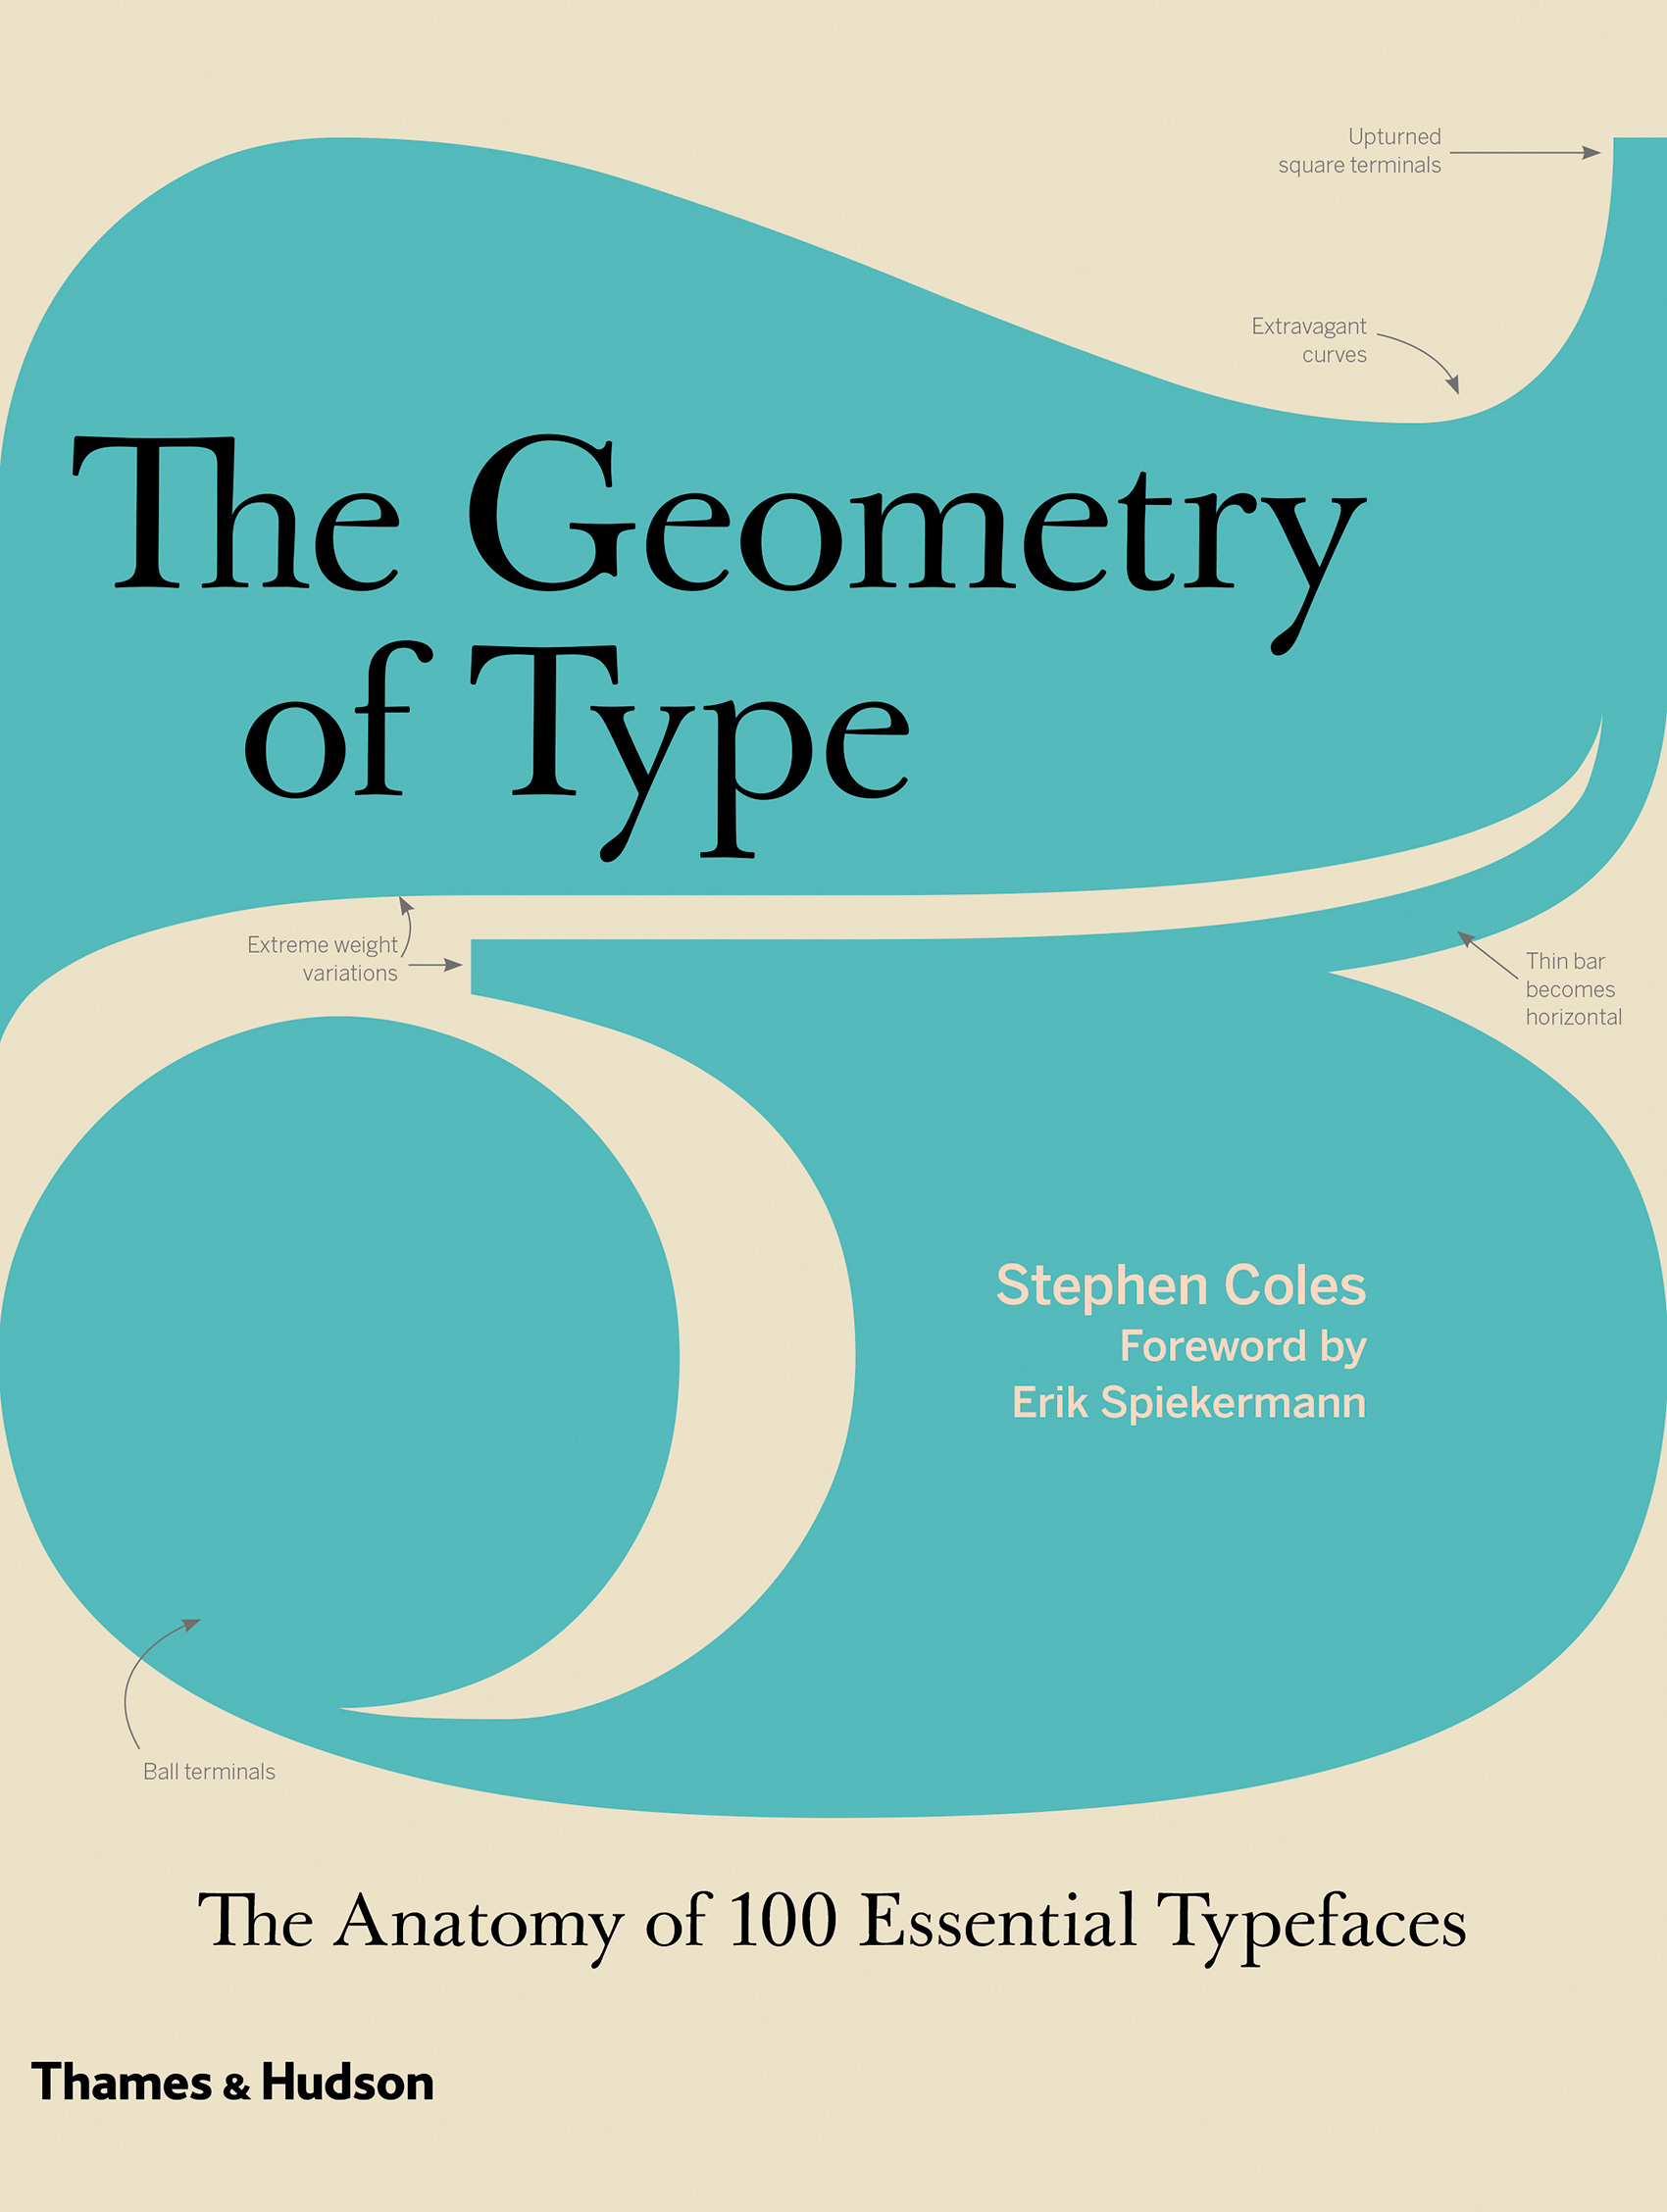 Tony Seddon - The Geometry of Type